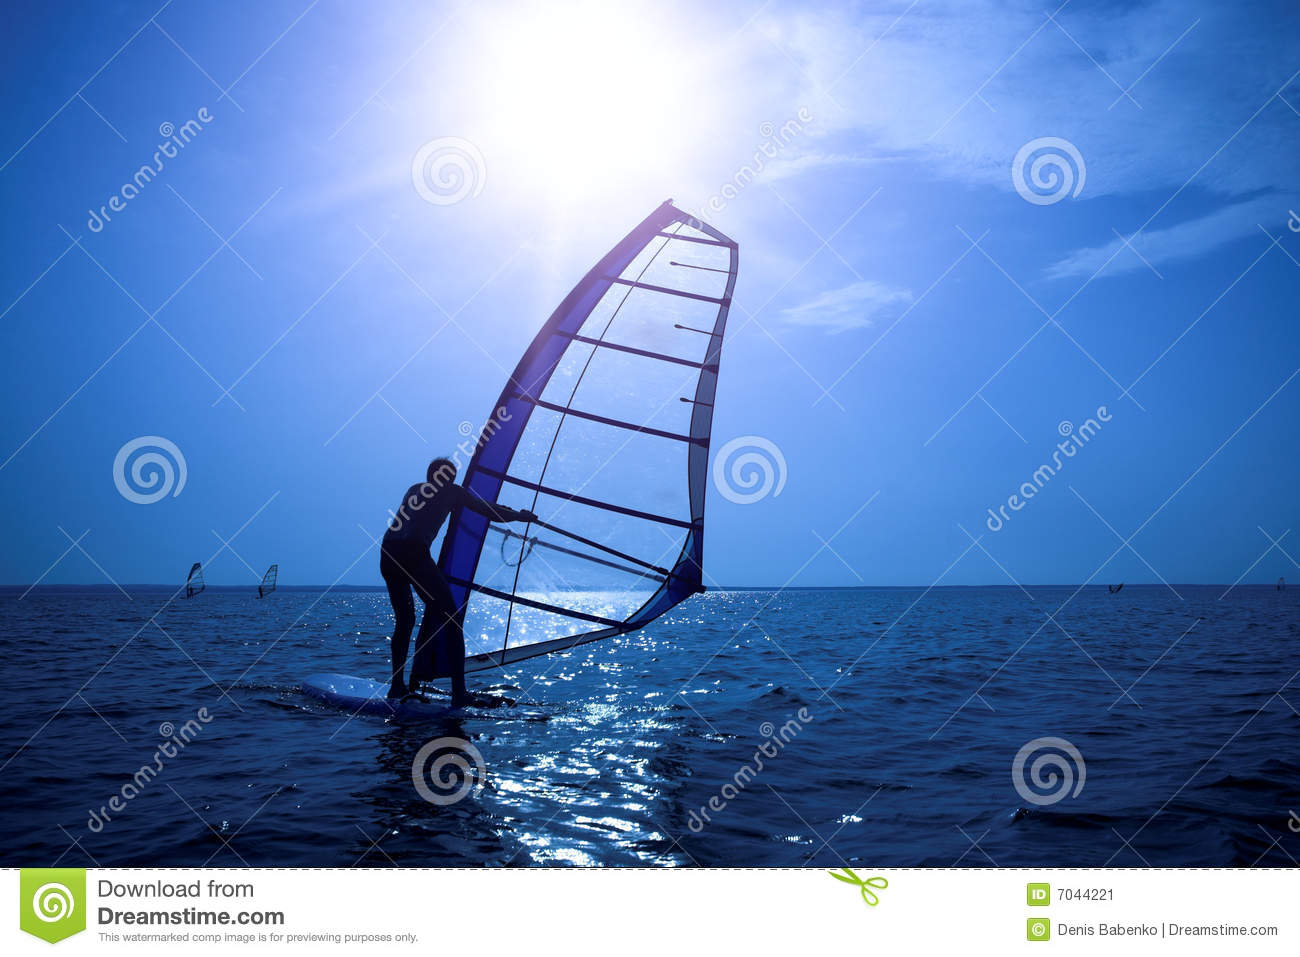 Surfer on sunshine